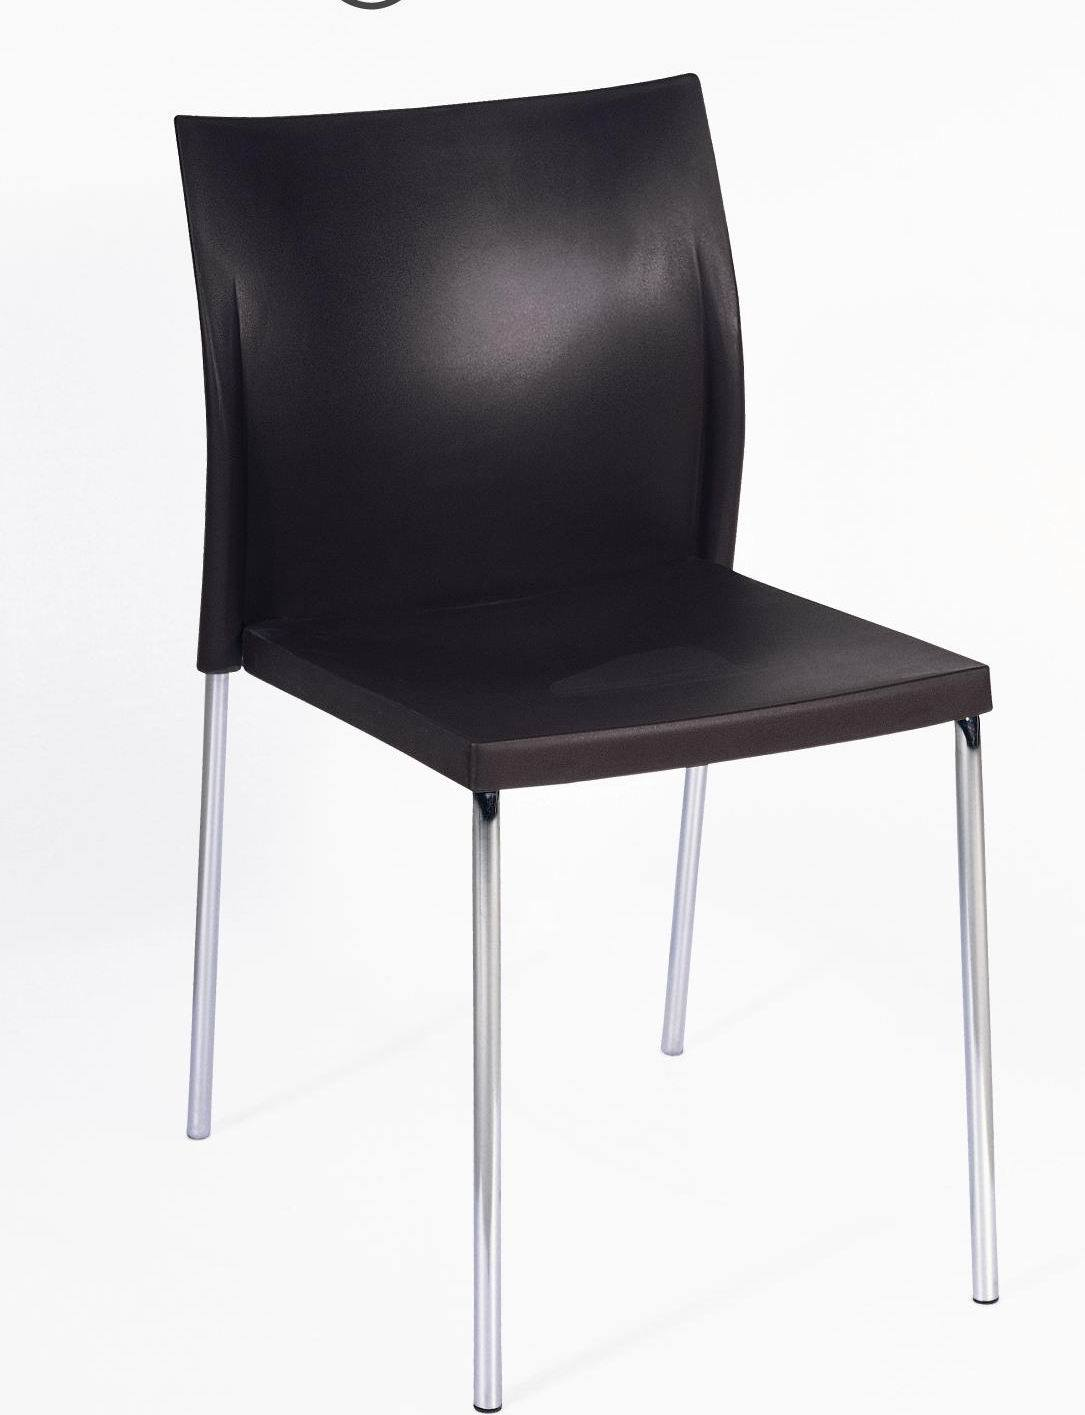 China Plastic Stacking Dining Chair Gege Chair Photos